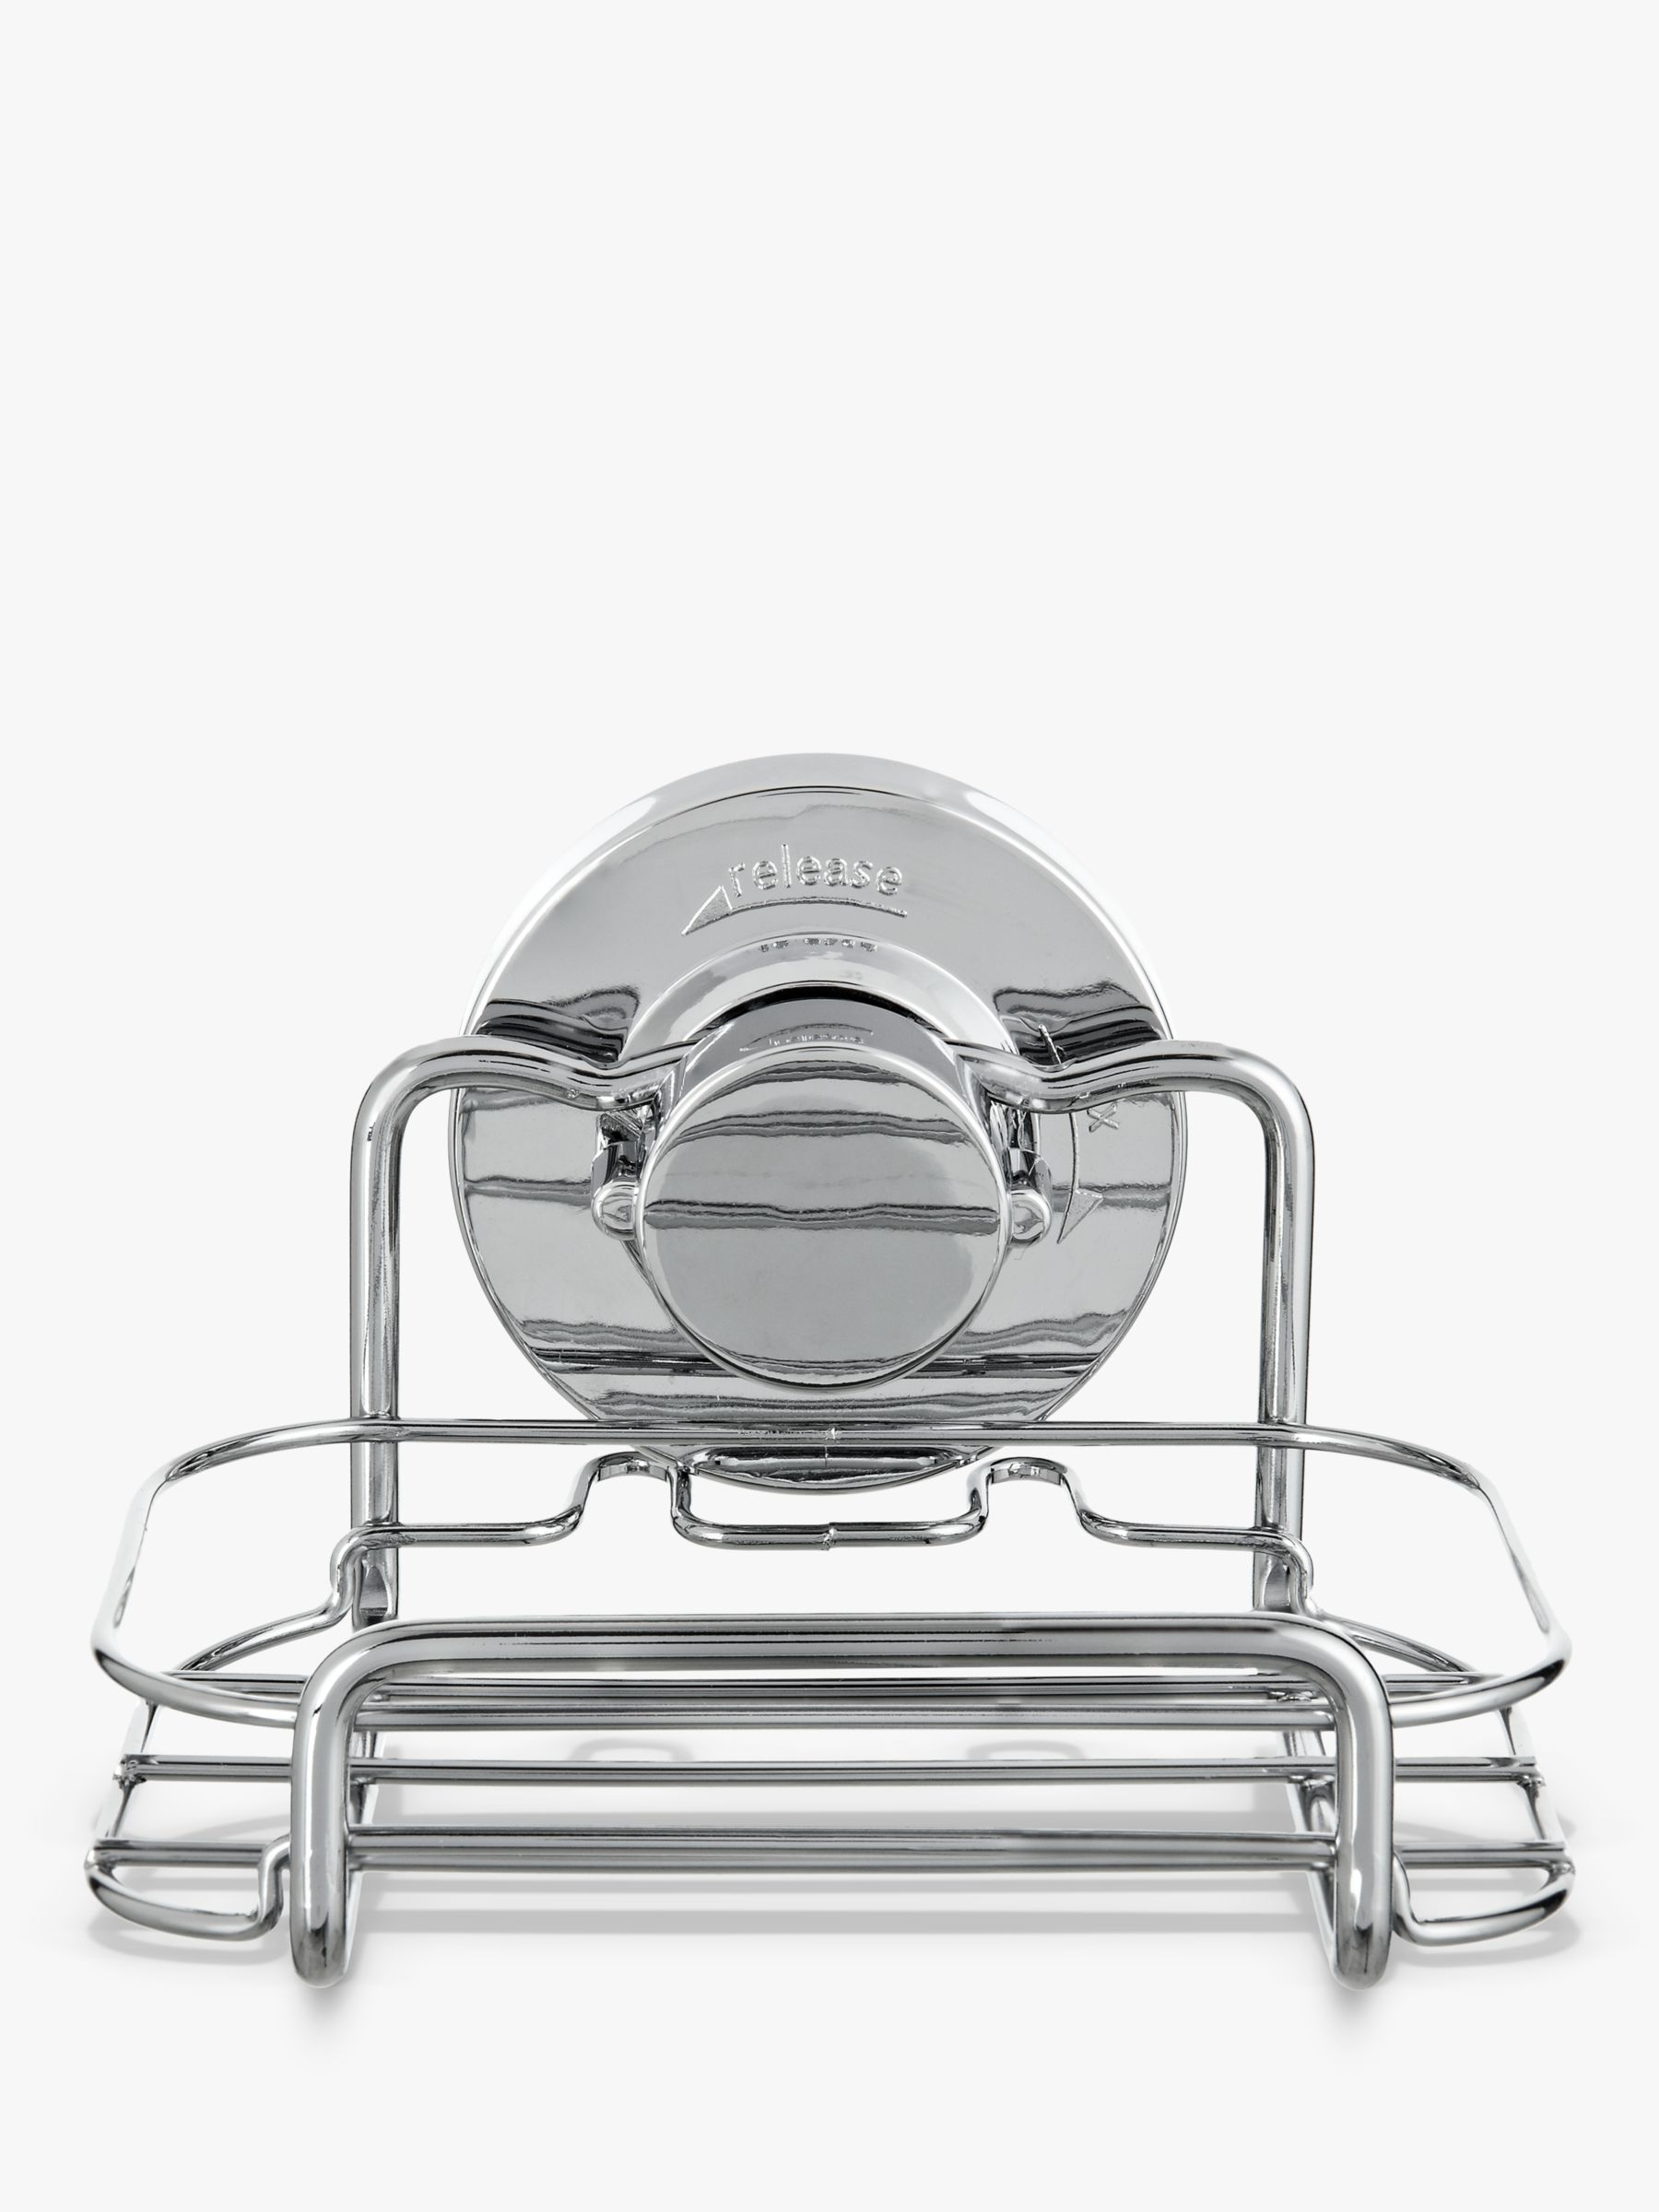 Bliss Bliss Lock N Roll Suction Soap Dish